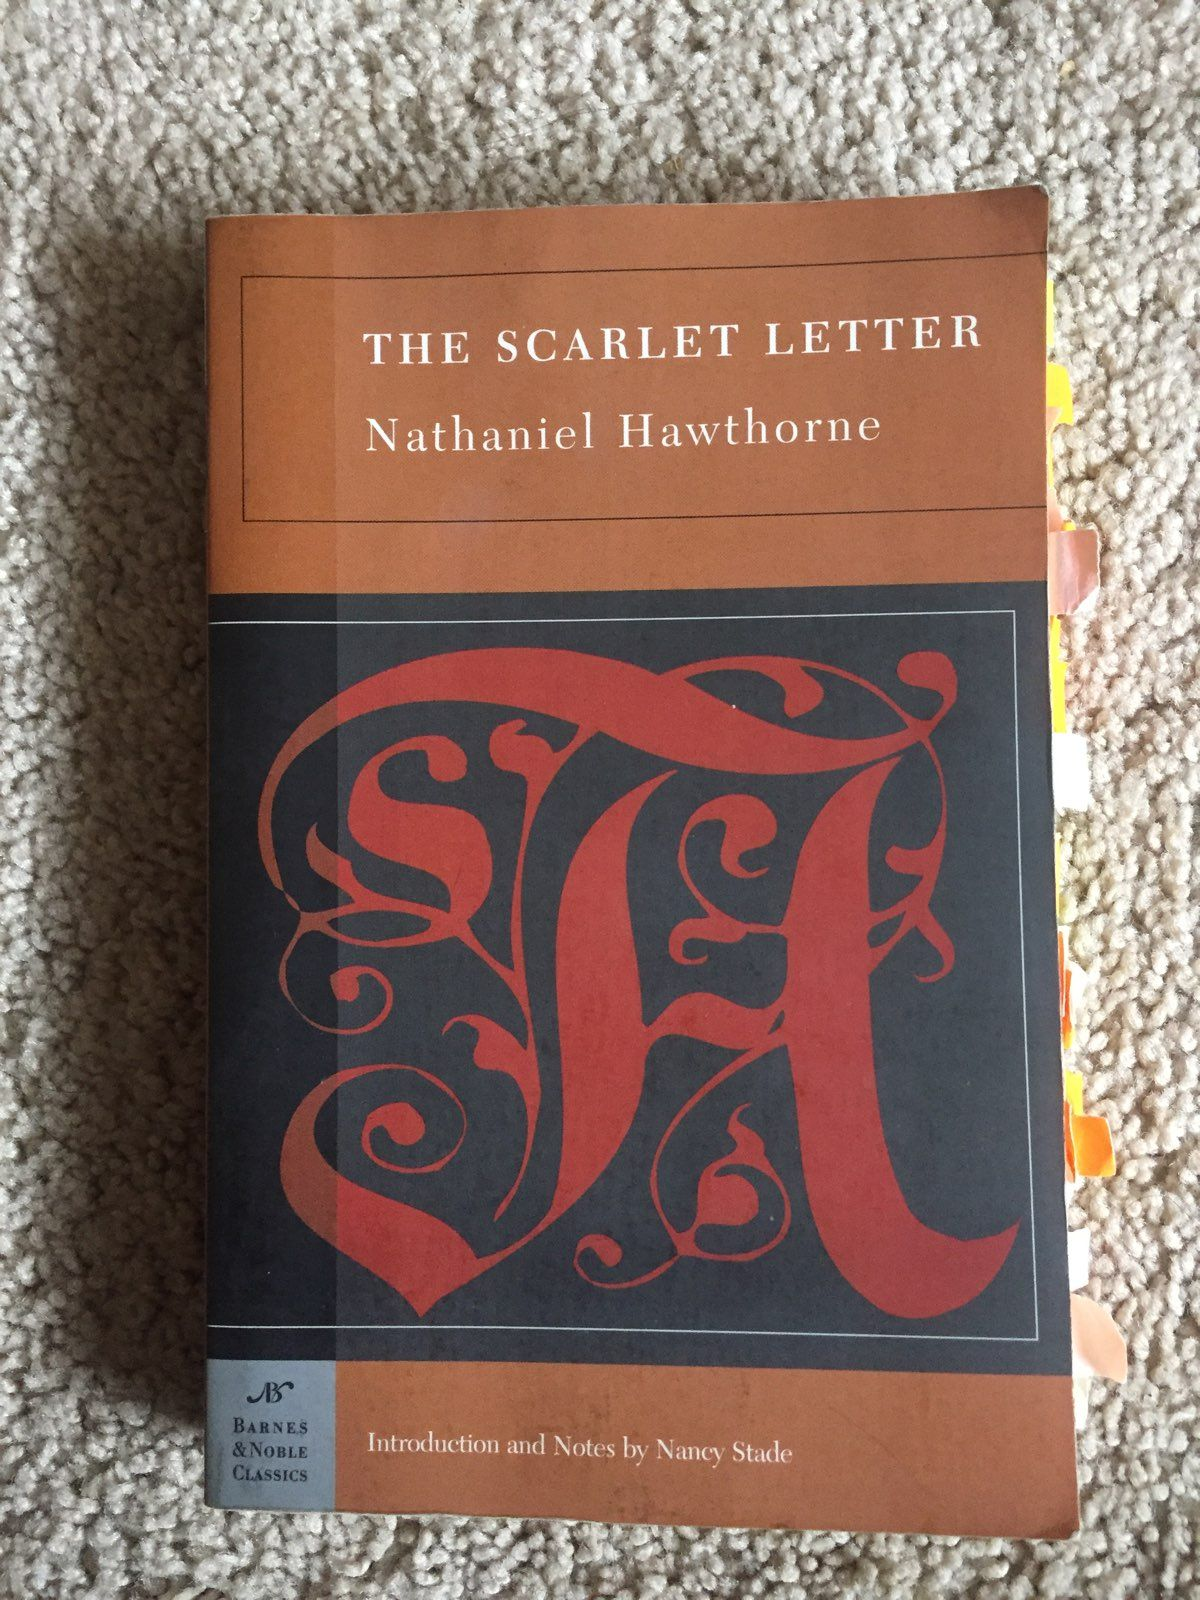 100 the scarlet letter book cover the scarlet letter by the scarlet letter book cover madrichimfo Images